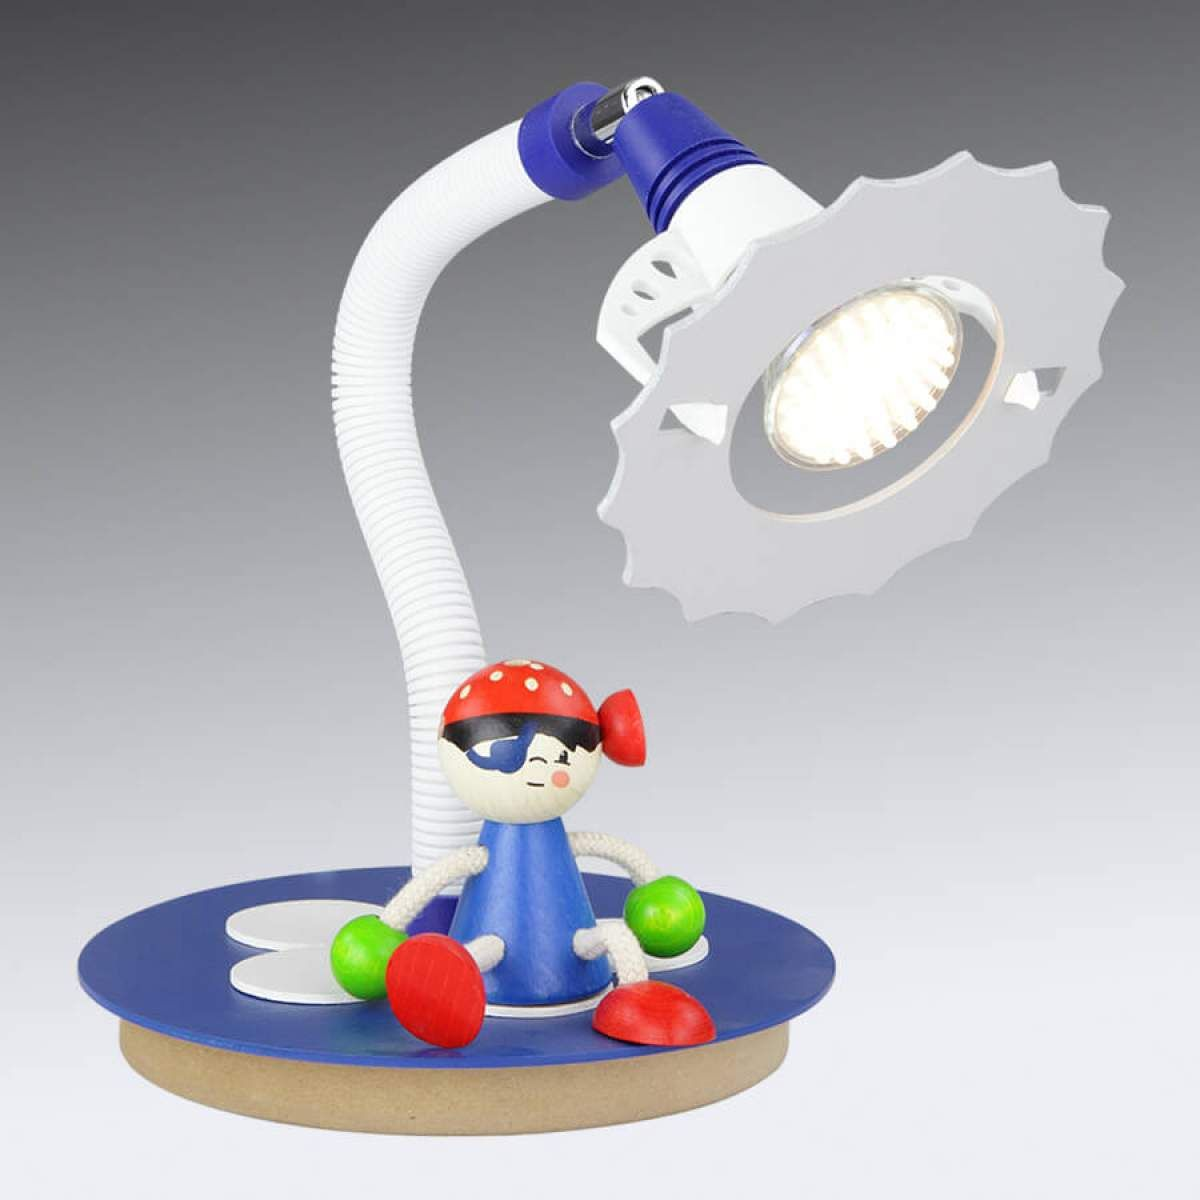 Table De Chevet Pirate lampe à poser led pirate avec personnage assis | lampe à